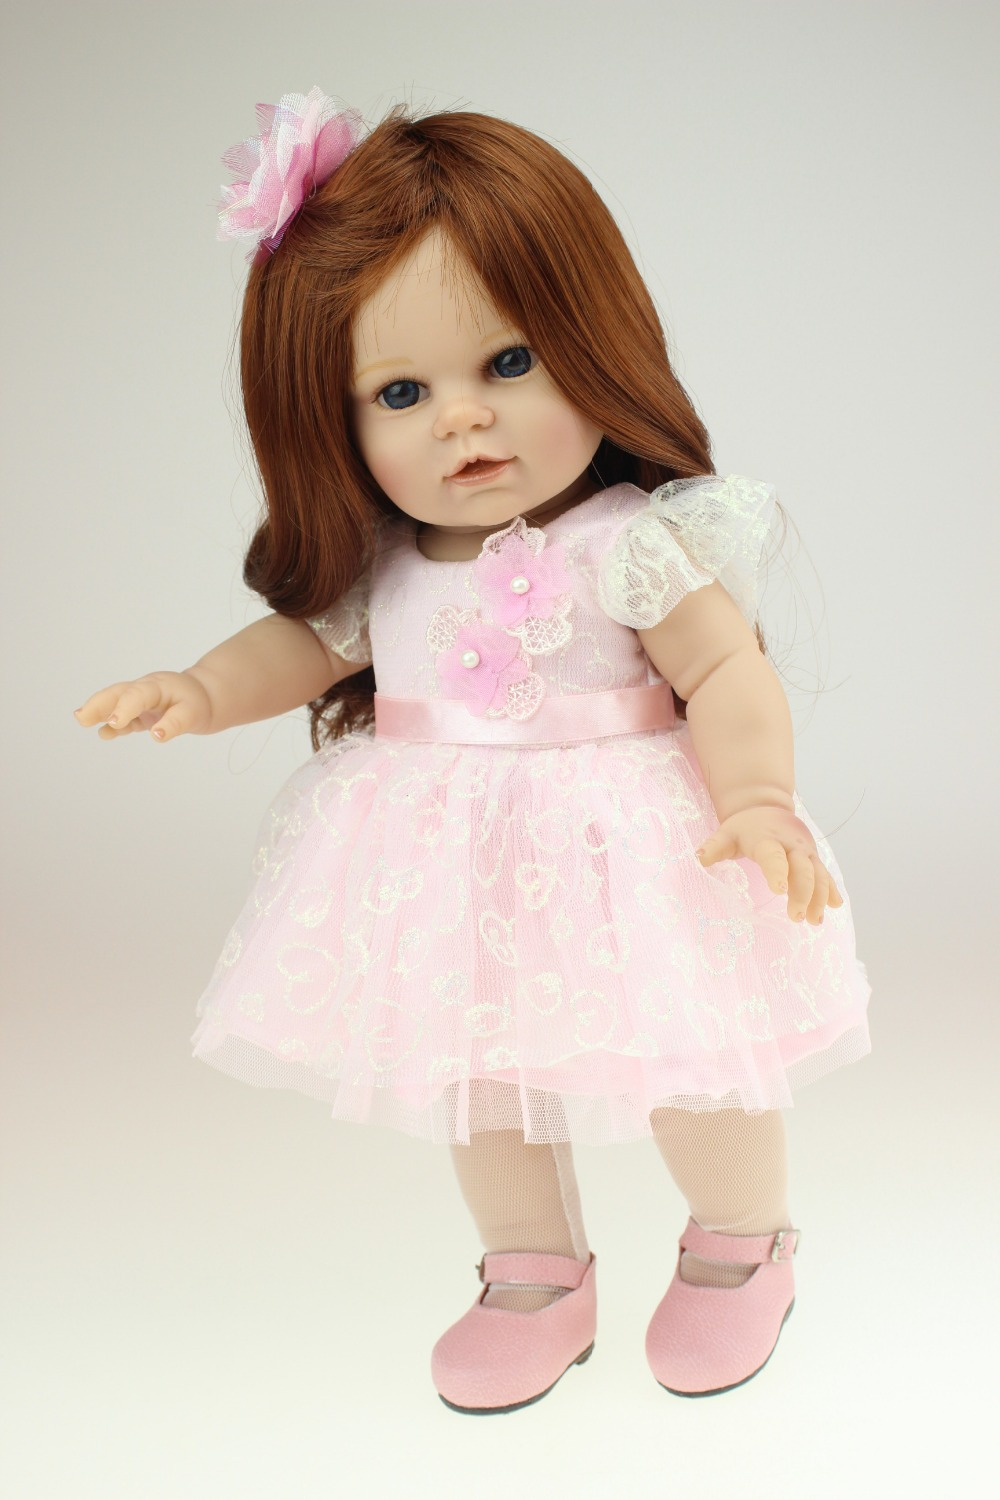 How do you ship an American Girl size doll without the box. I purchased some dolls and the boxes are damaged, I have made new outfits and want to ship them with the new outfits. I need some ideas on how to do this so the dolls dont get damage with their new makeover. thanks in advance.